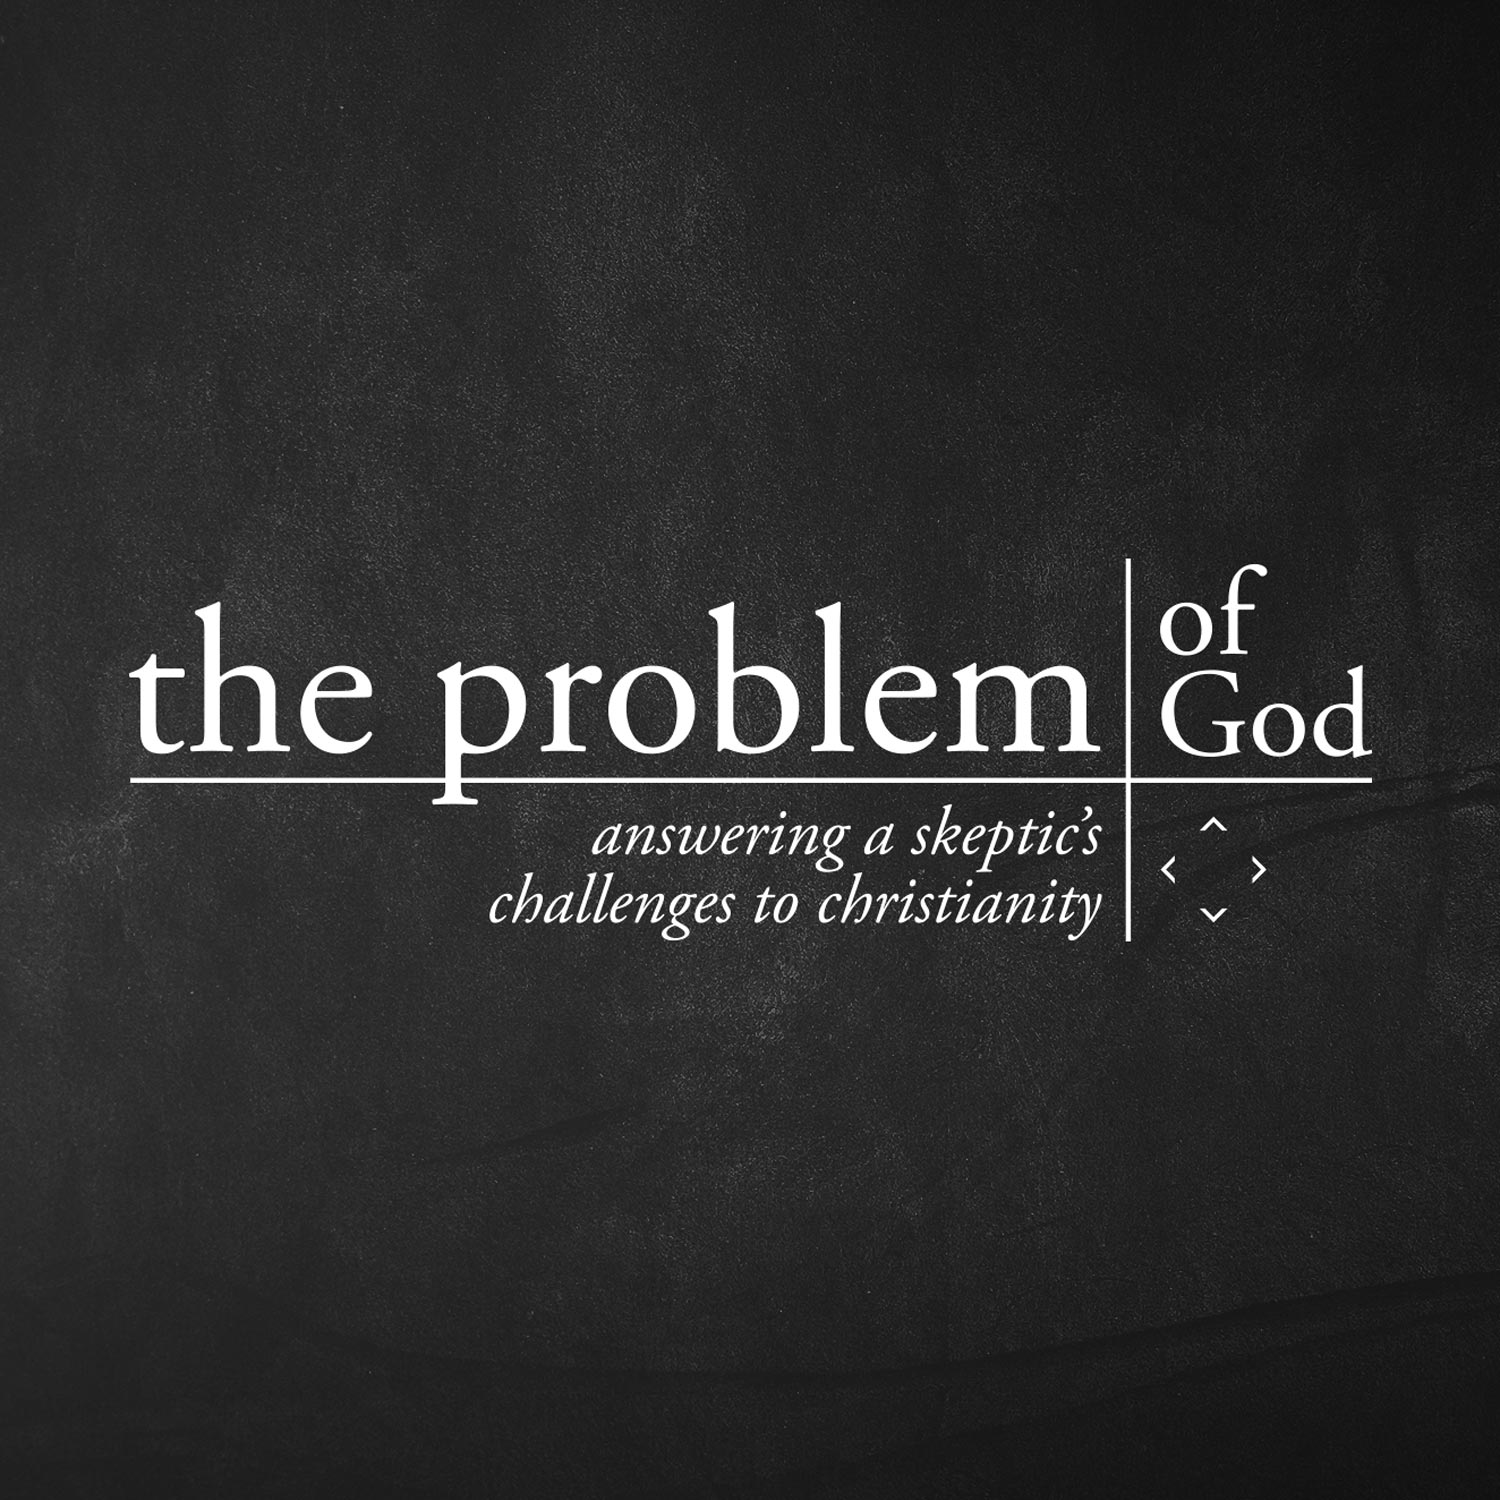 The Problem of God Series Graphic - Group Resources - Greenville Community Church